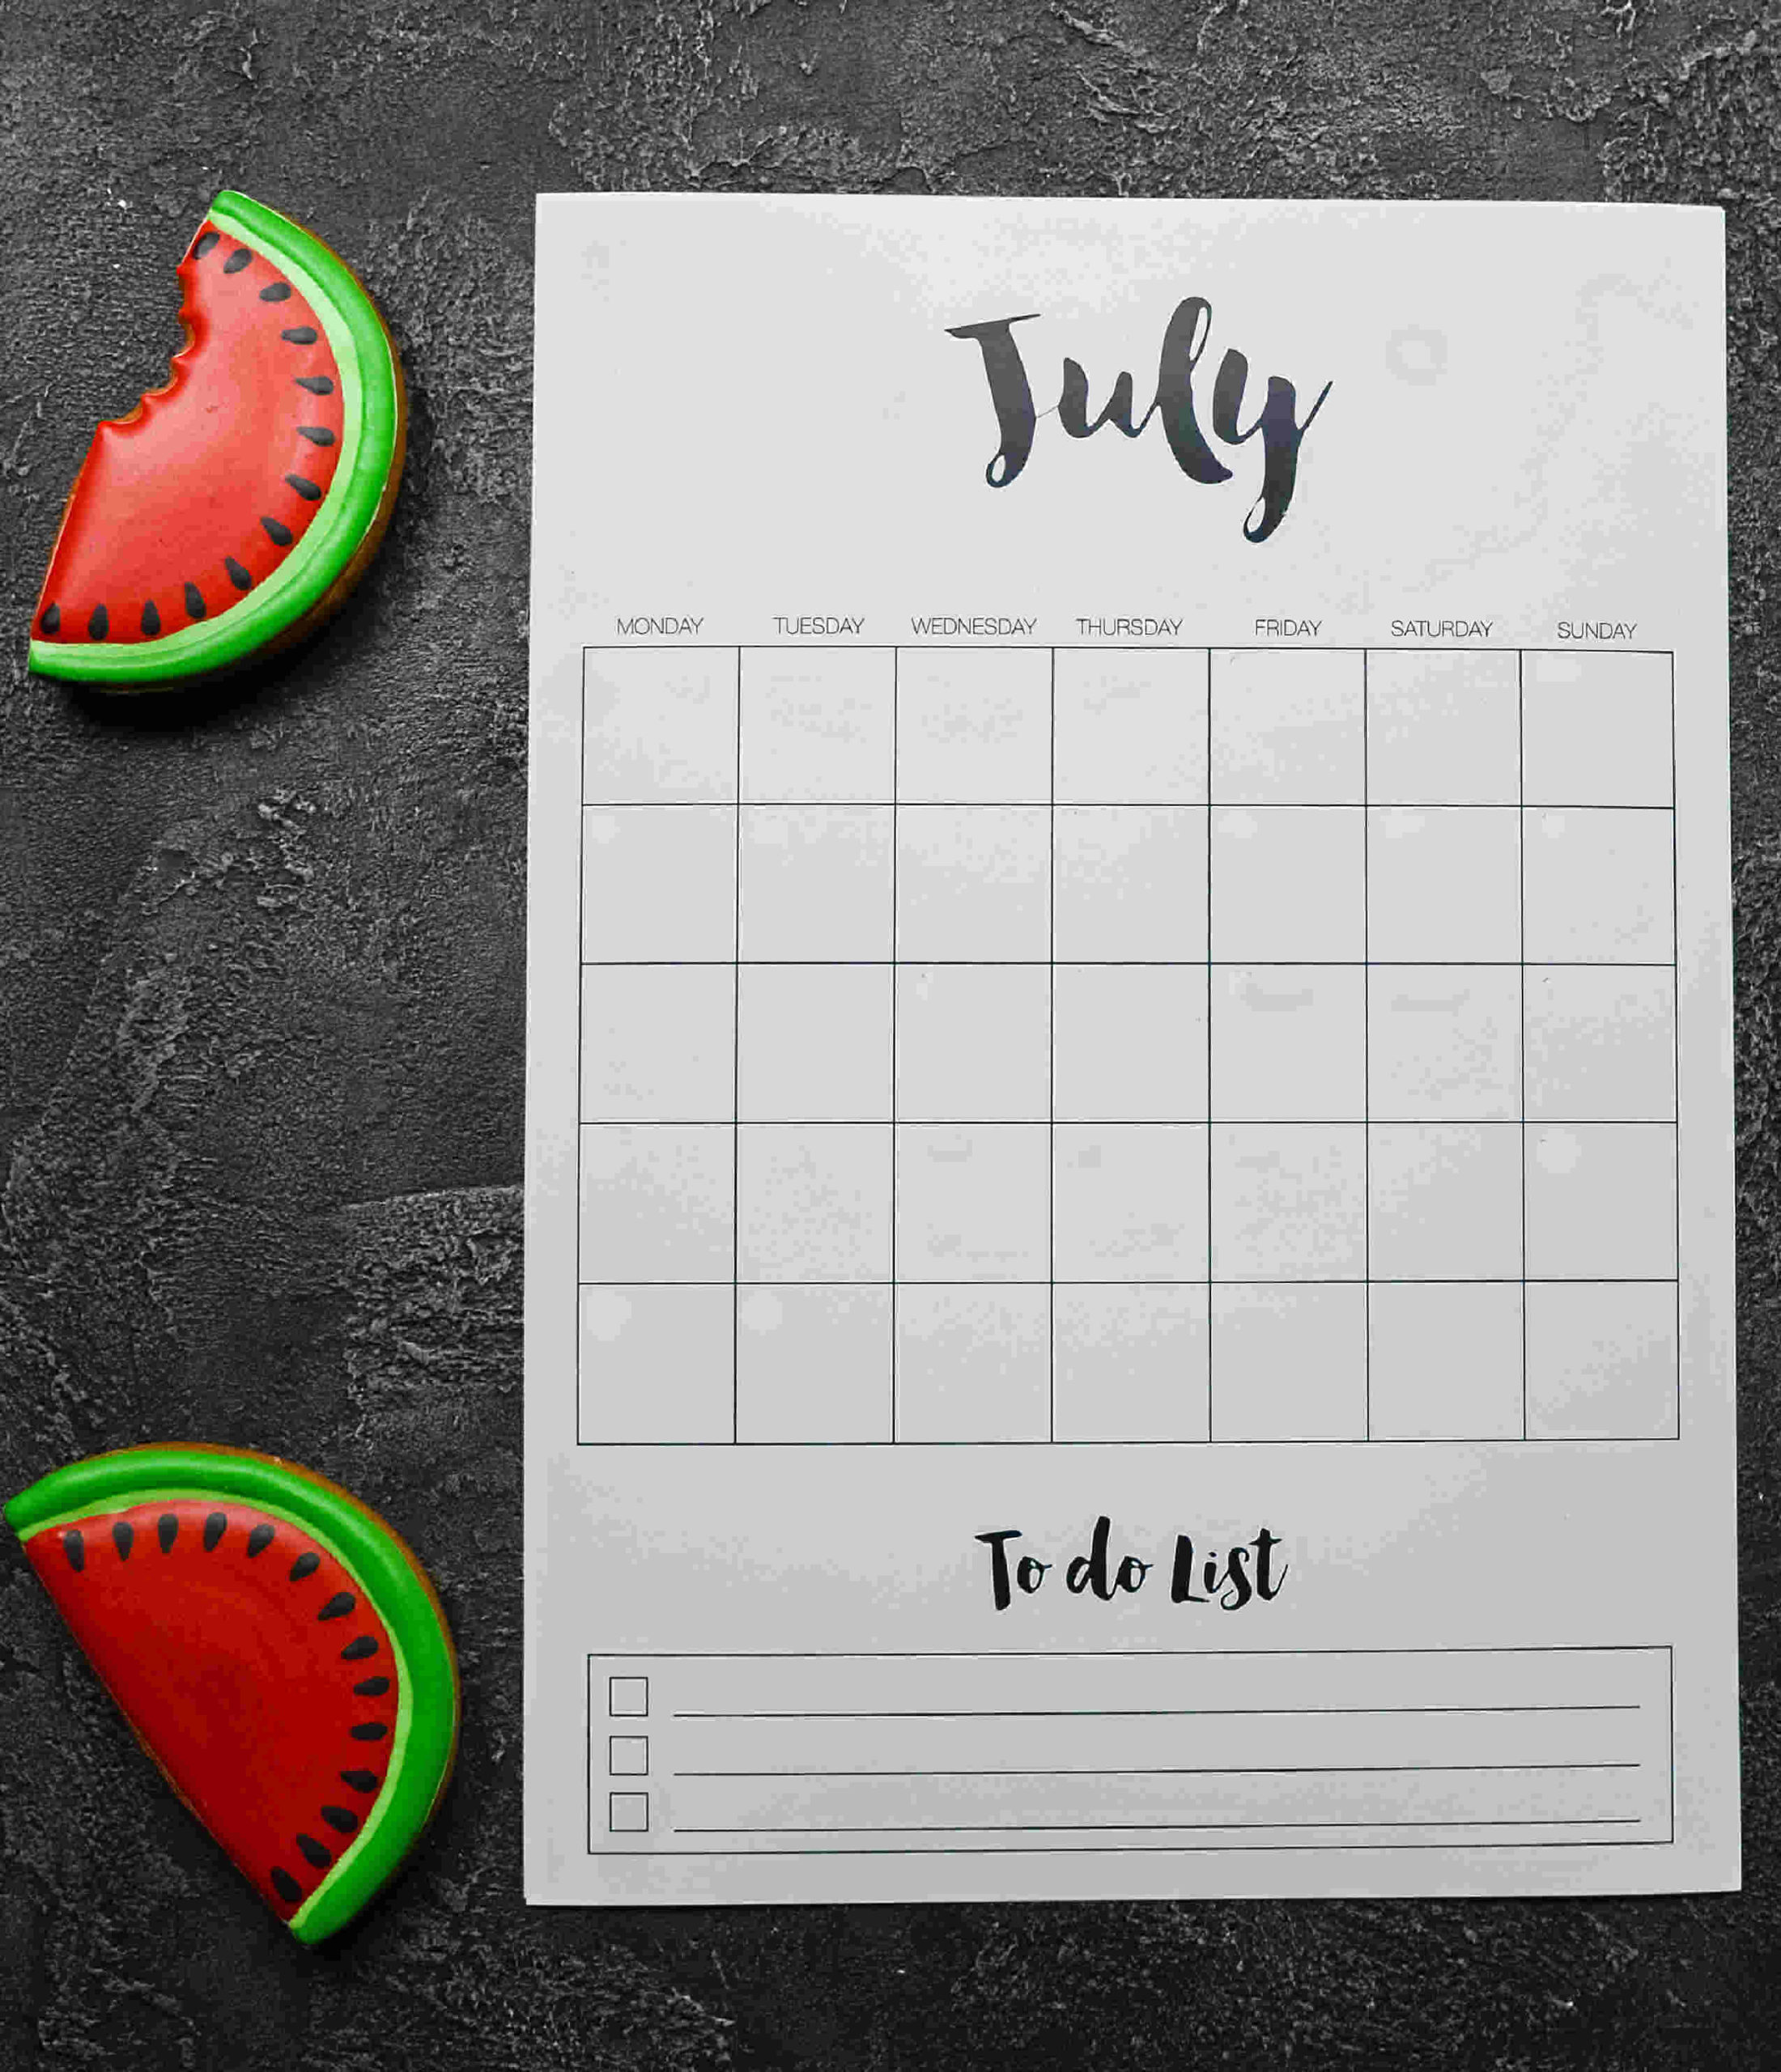 Watermelon slices and a July to do list page